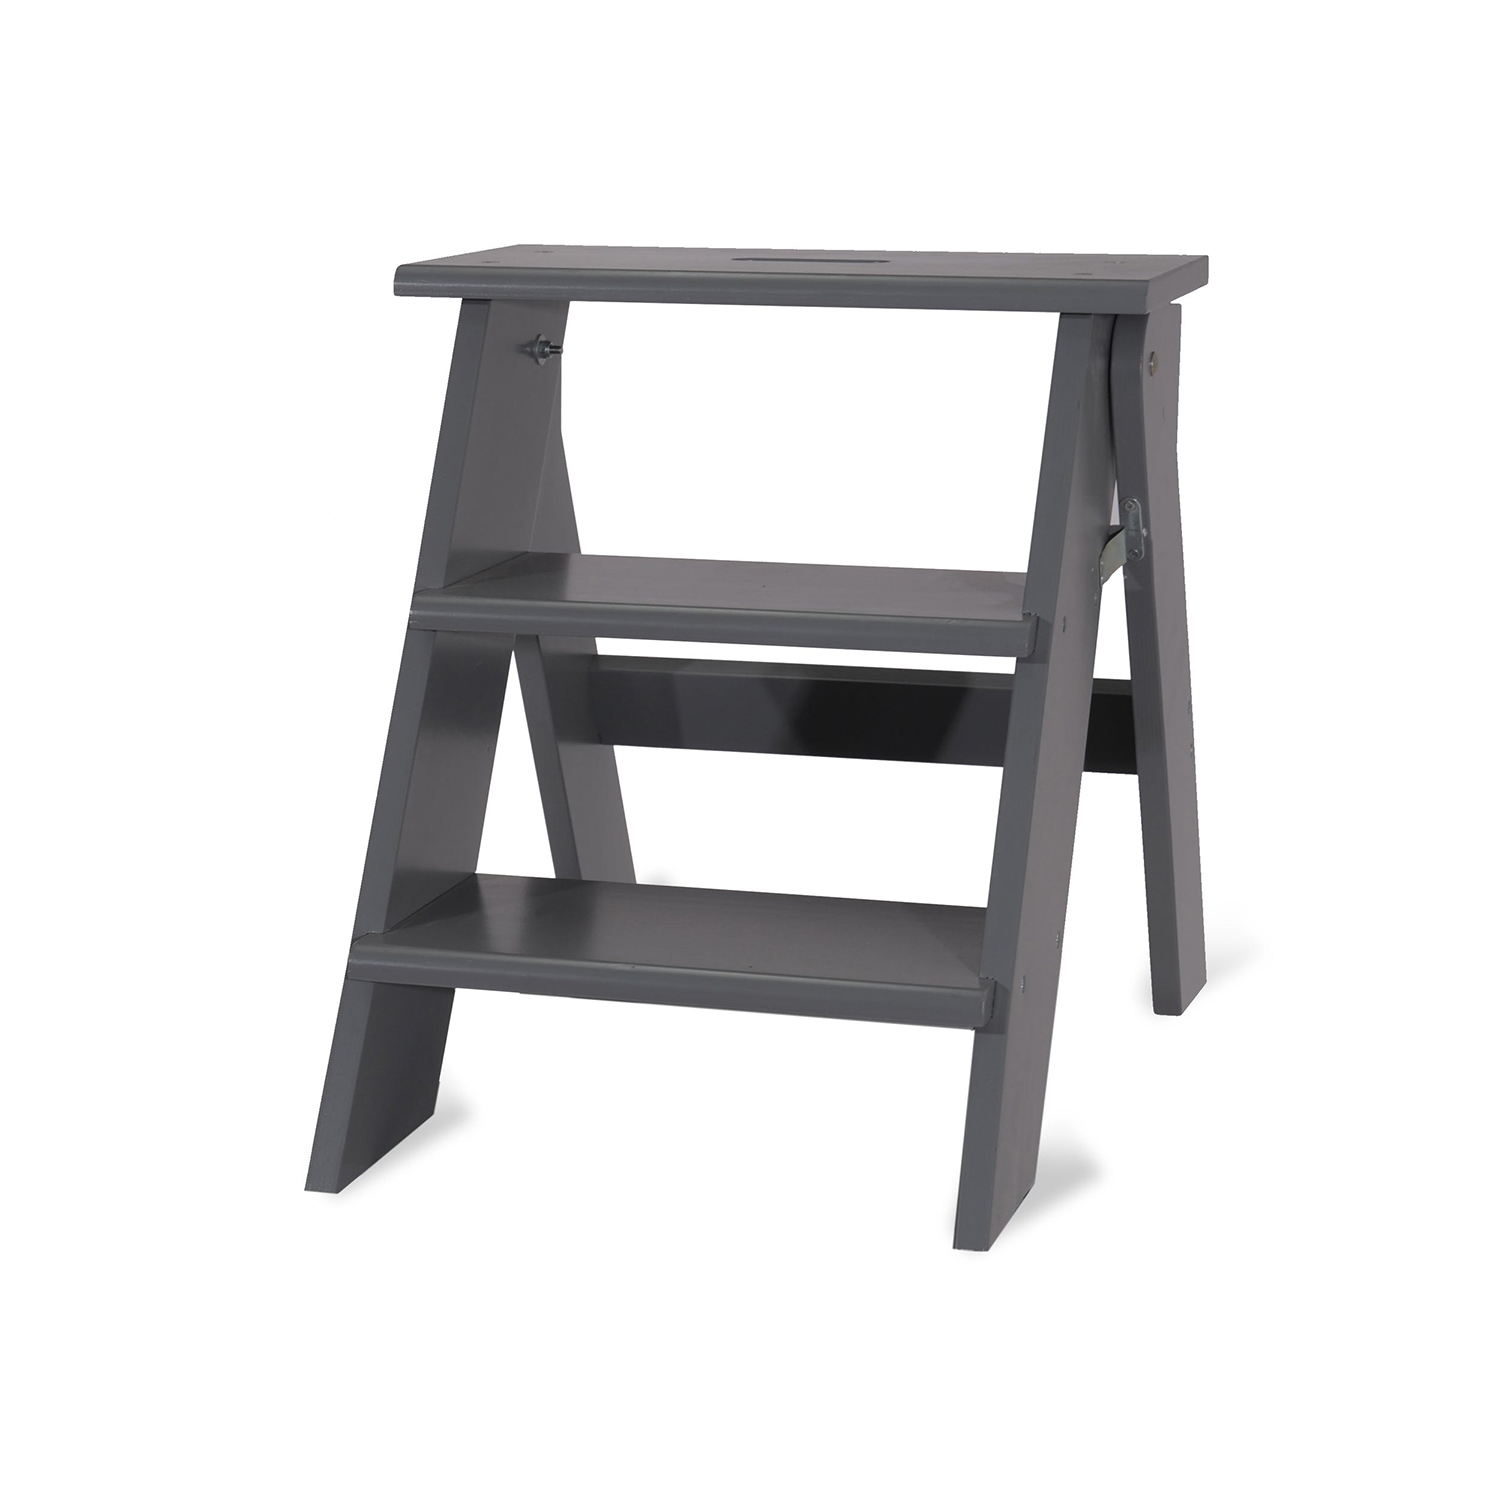 Image of Garden Trading Step Stool, Charcoal